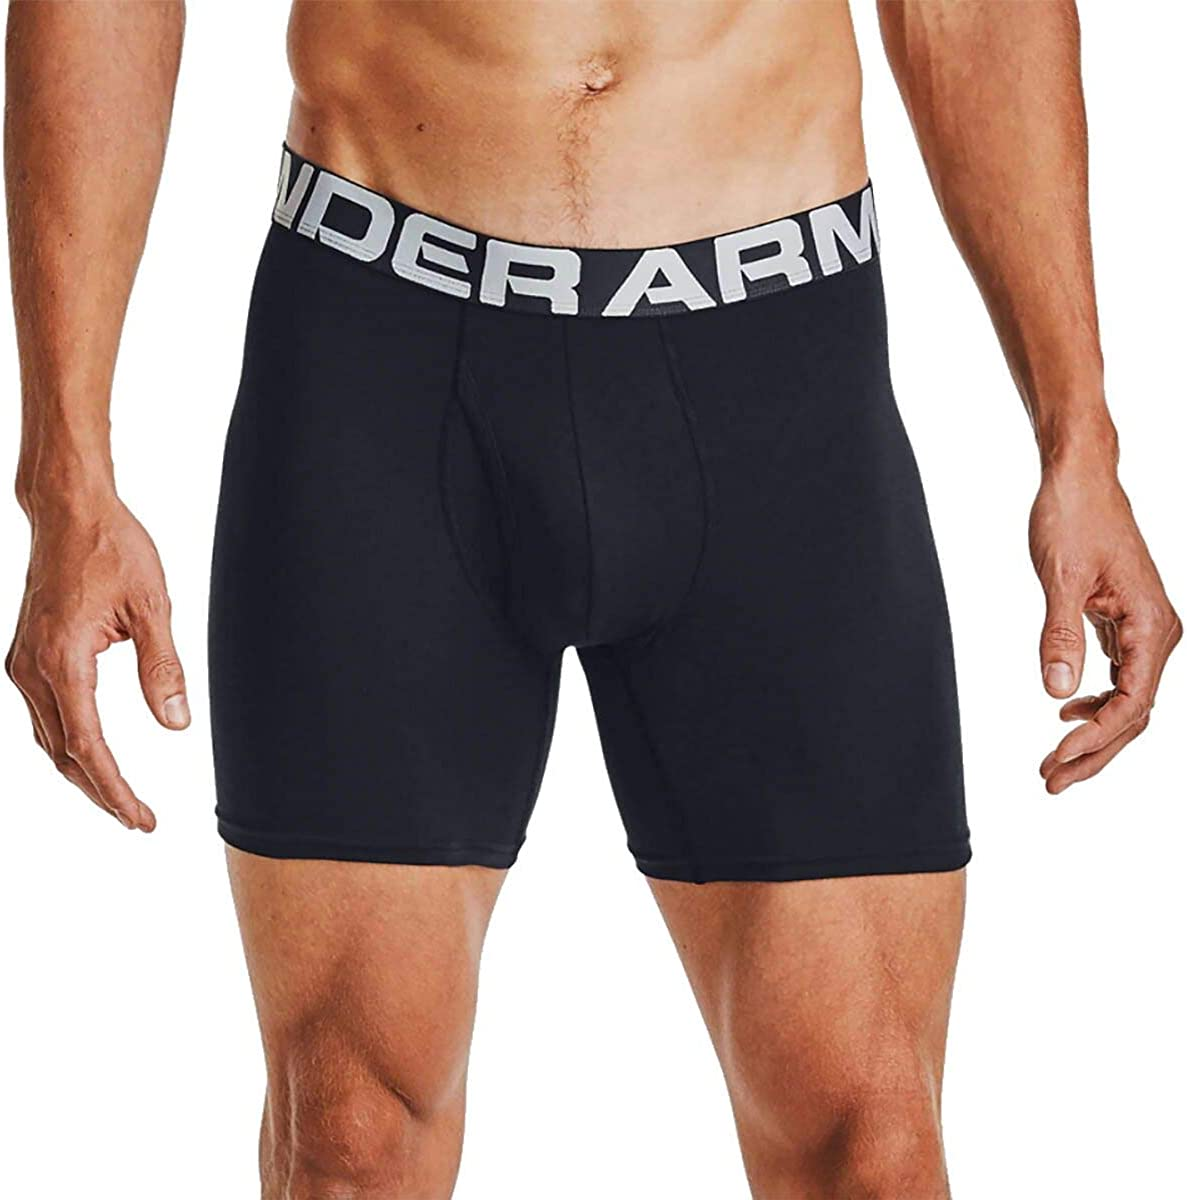 Under Armour Charged Cotton 6in Underwear - 3-Pack - Men's Black/Black/Black, XL: Clothing